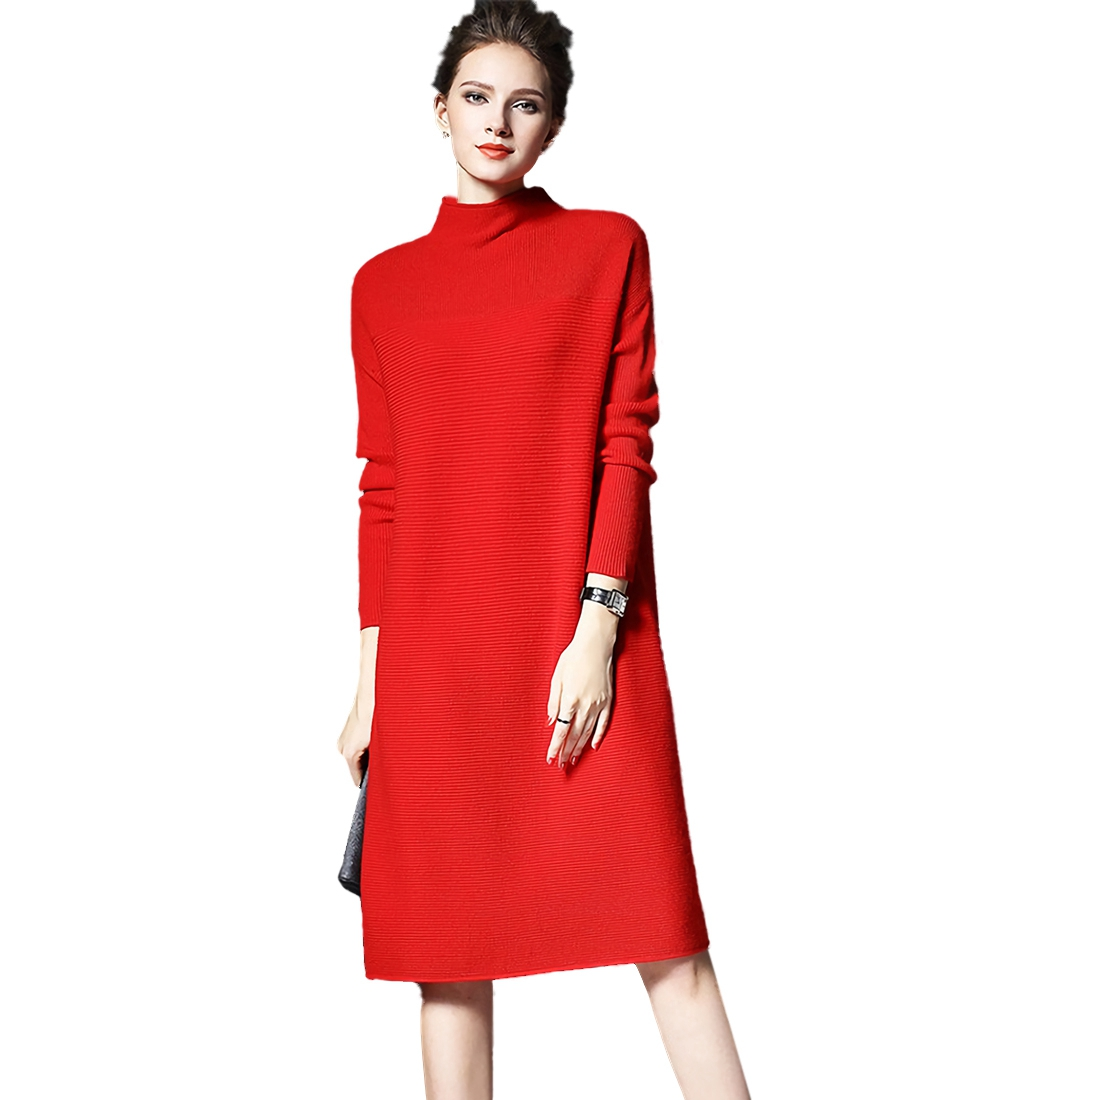 Womens Casual Fashion Sweater Dress Autumn Winter Solid Color Long Sleeve Knitting Dresses Plus Size Loose Ladies Dress(